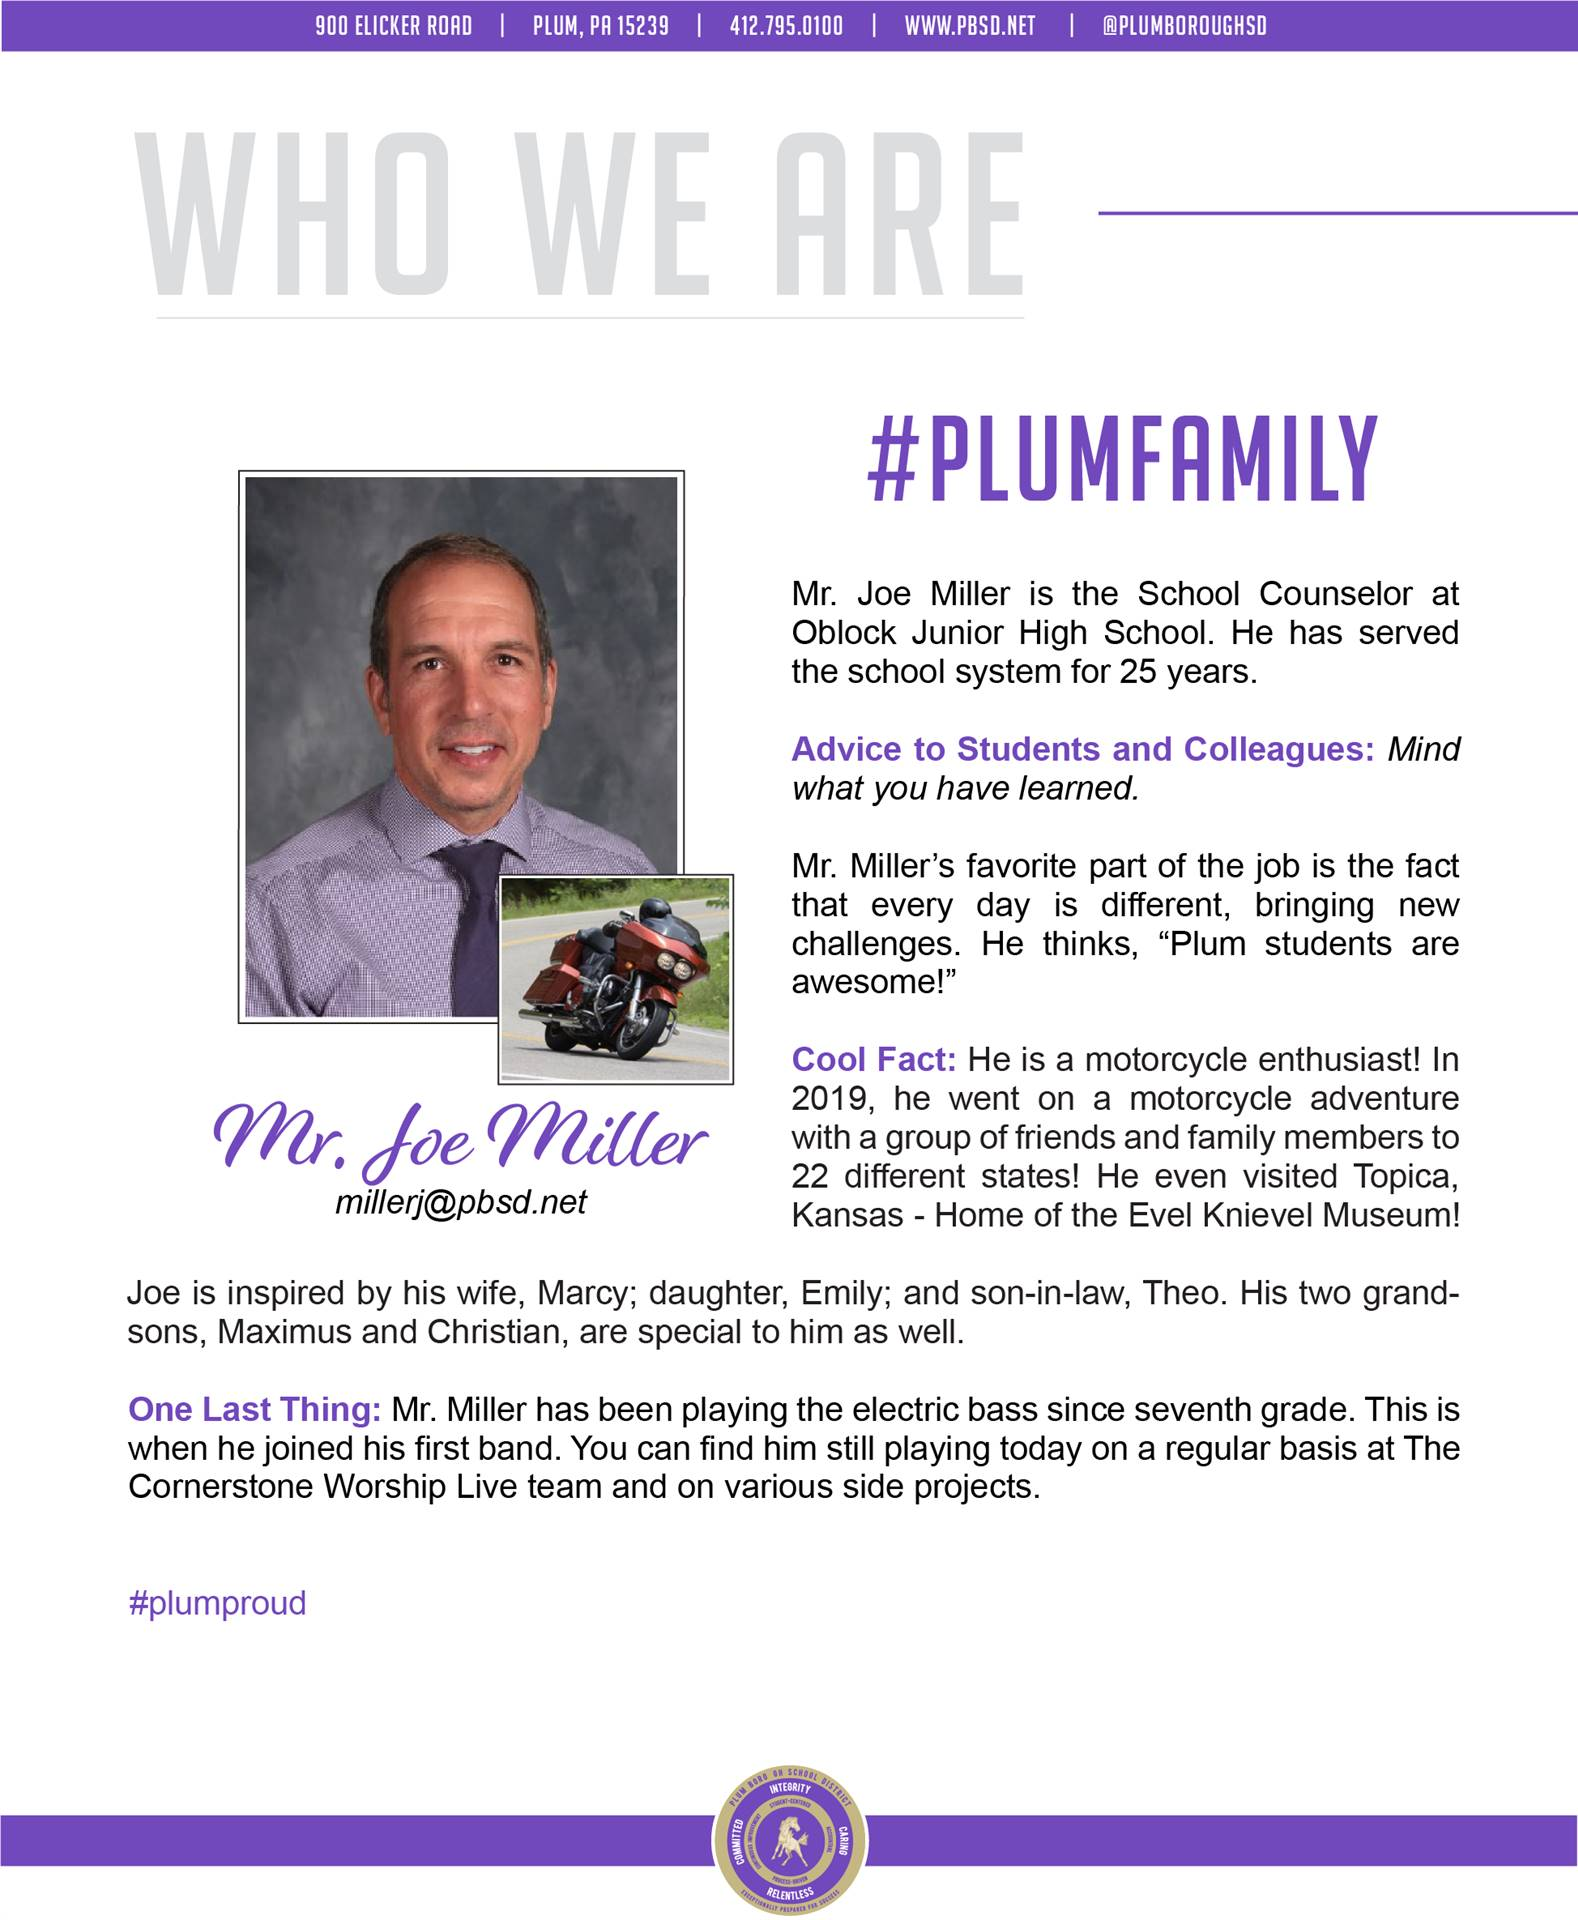 Who We Are Wednesday features Joe Miller.